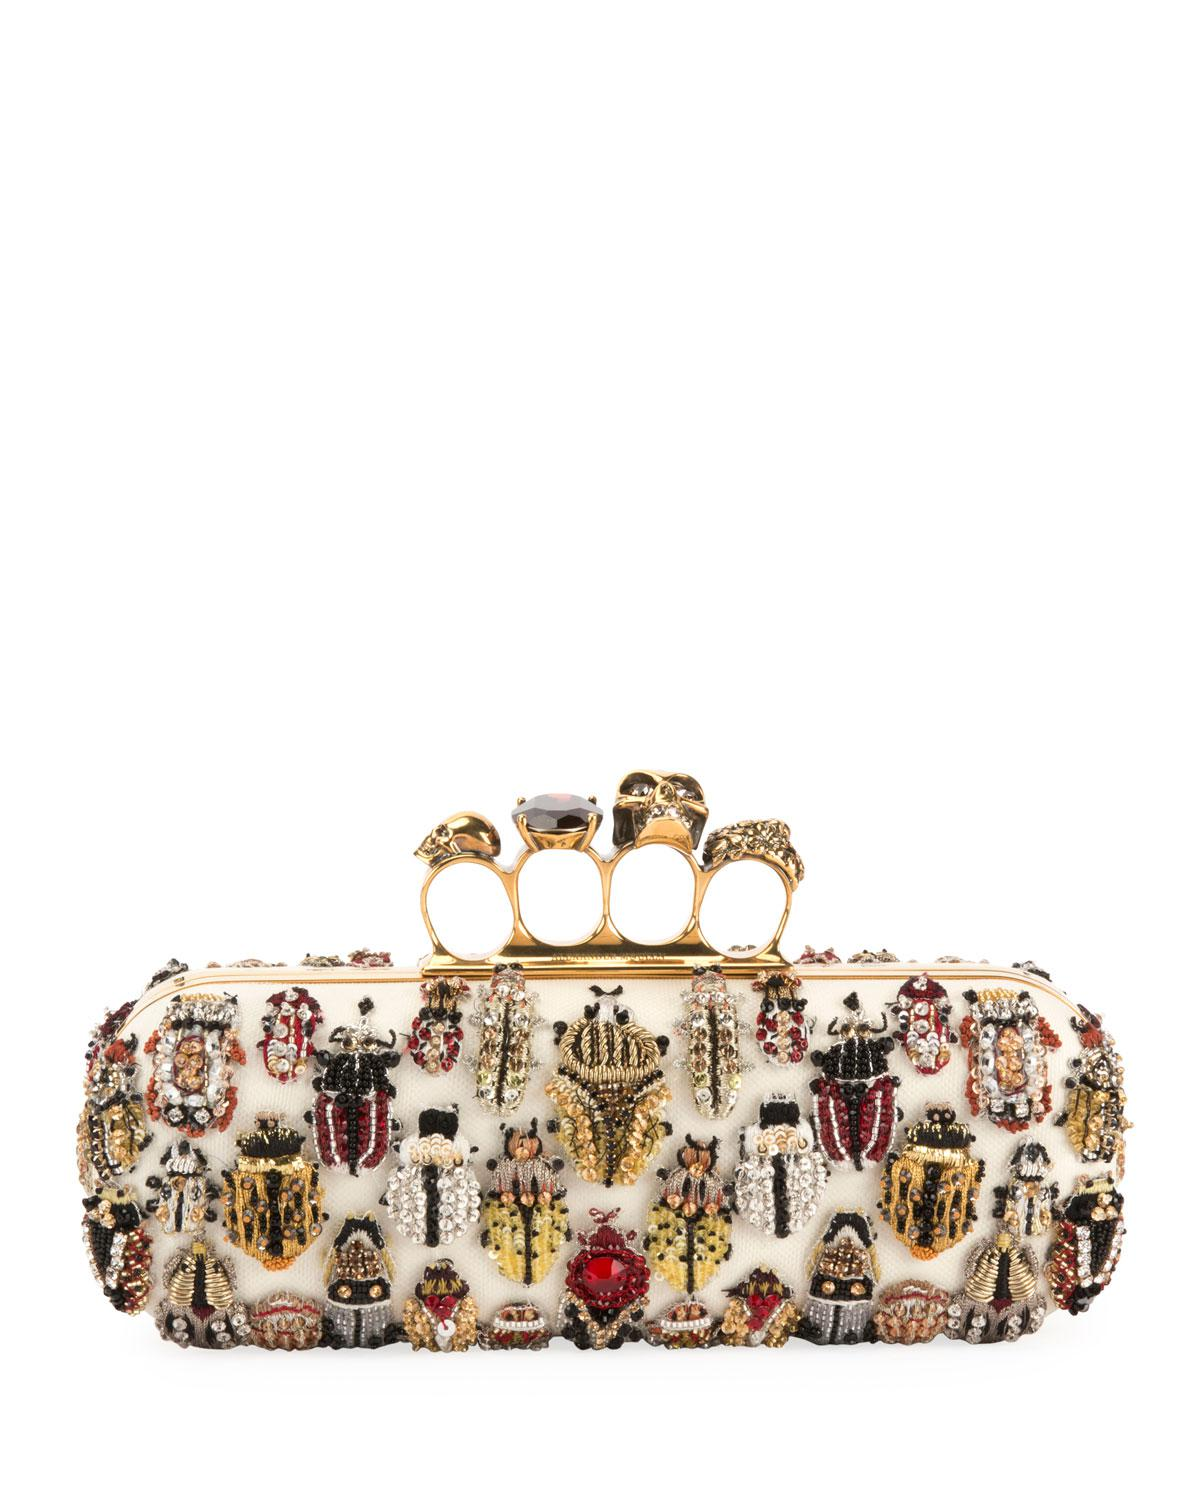 Alexander Mcqueen Long 4 Ring Knuckle Clutch Bag With Bug